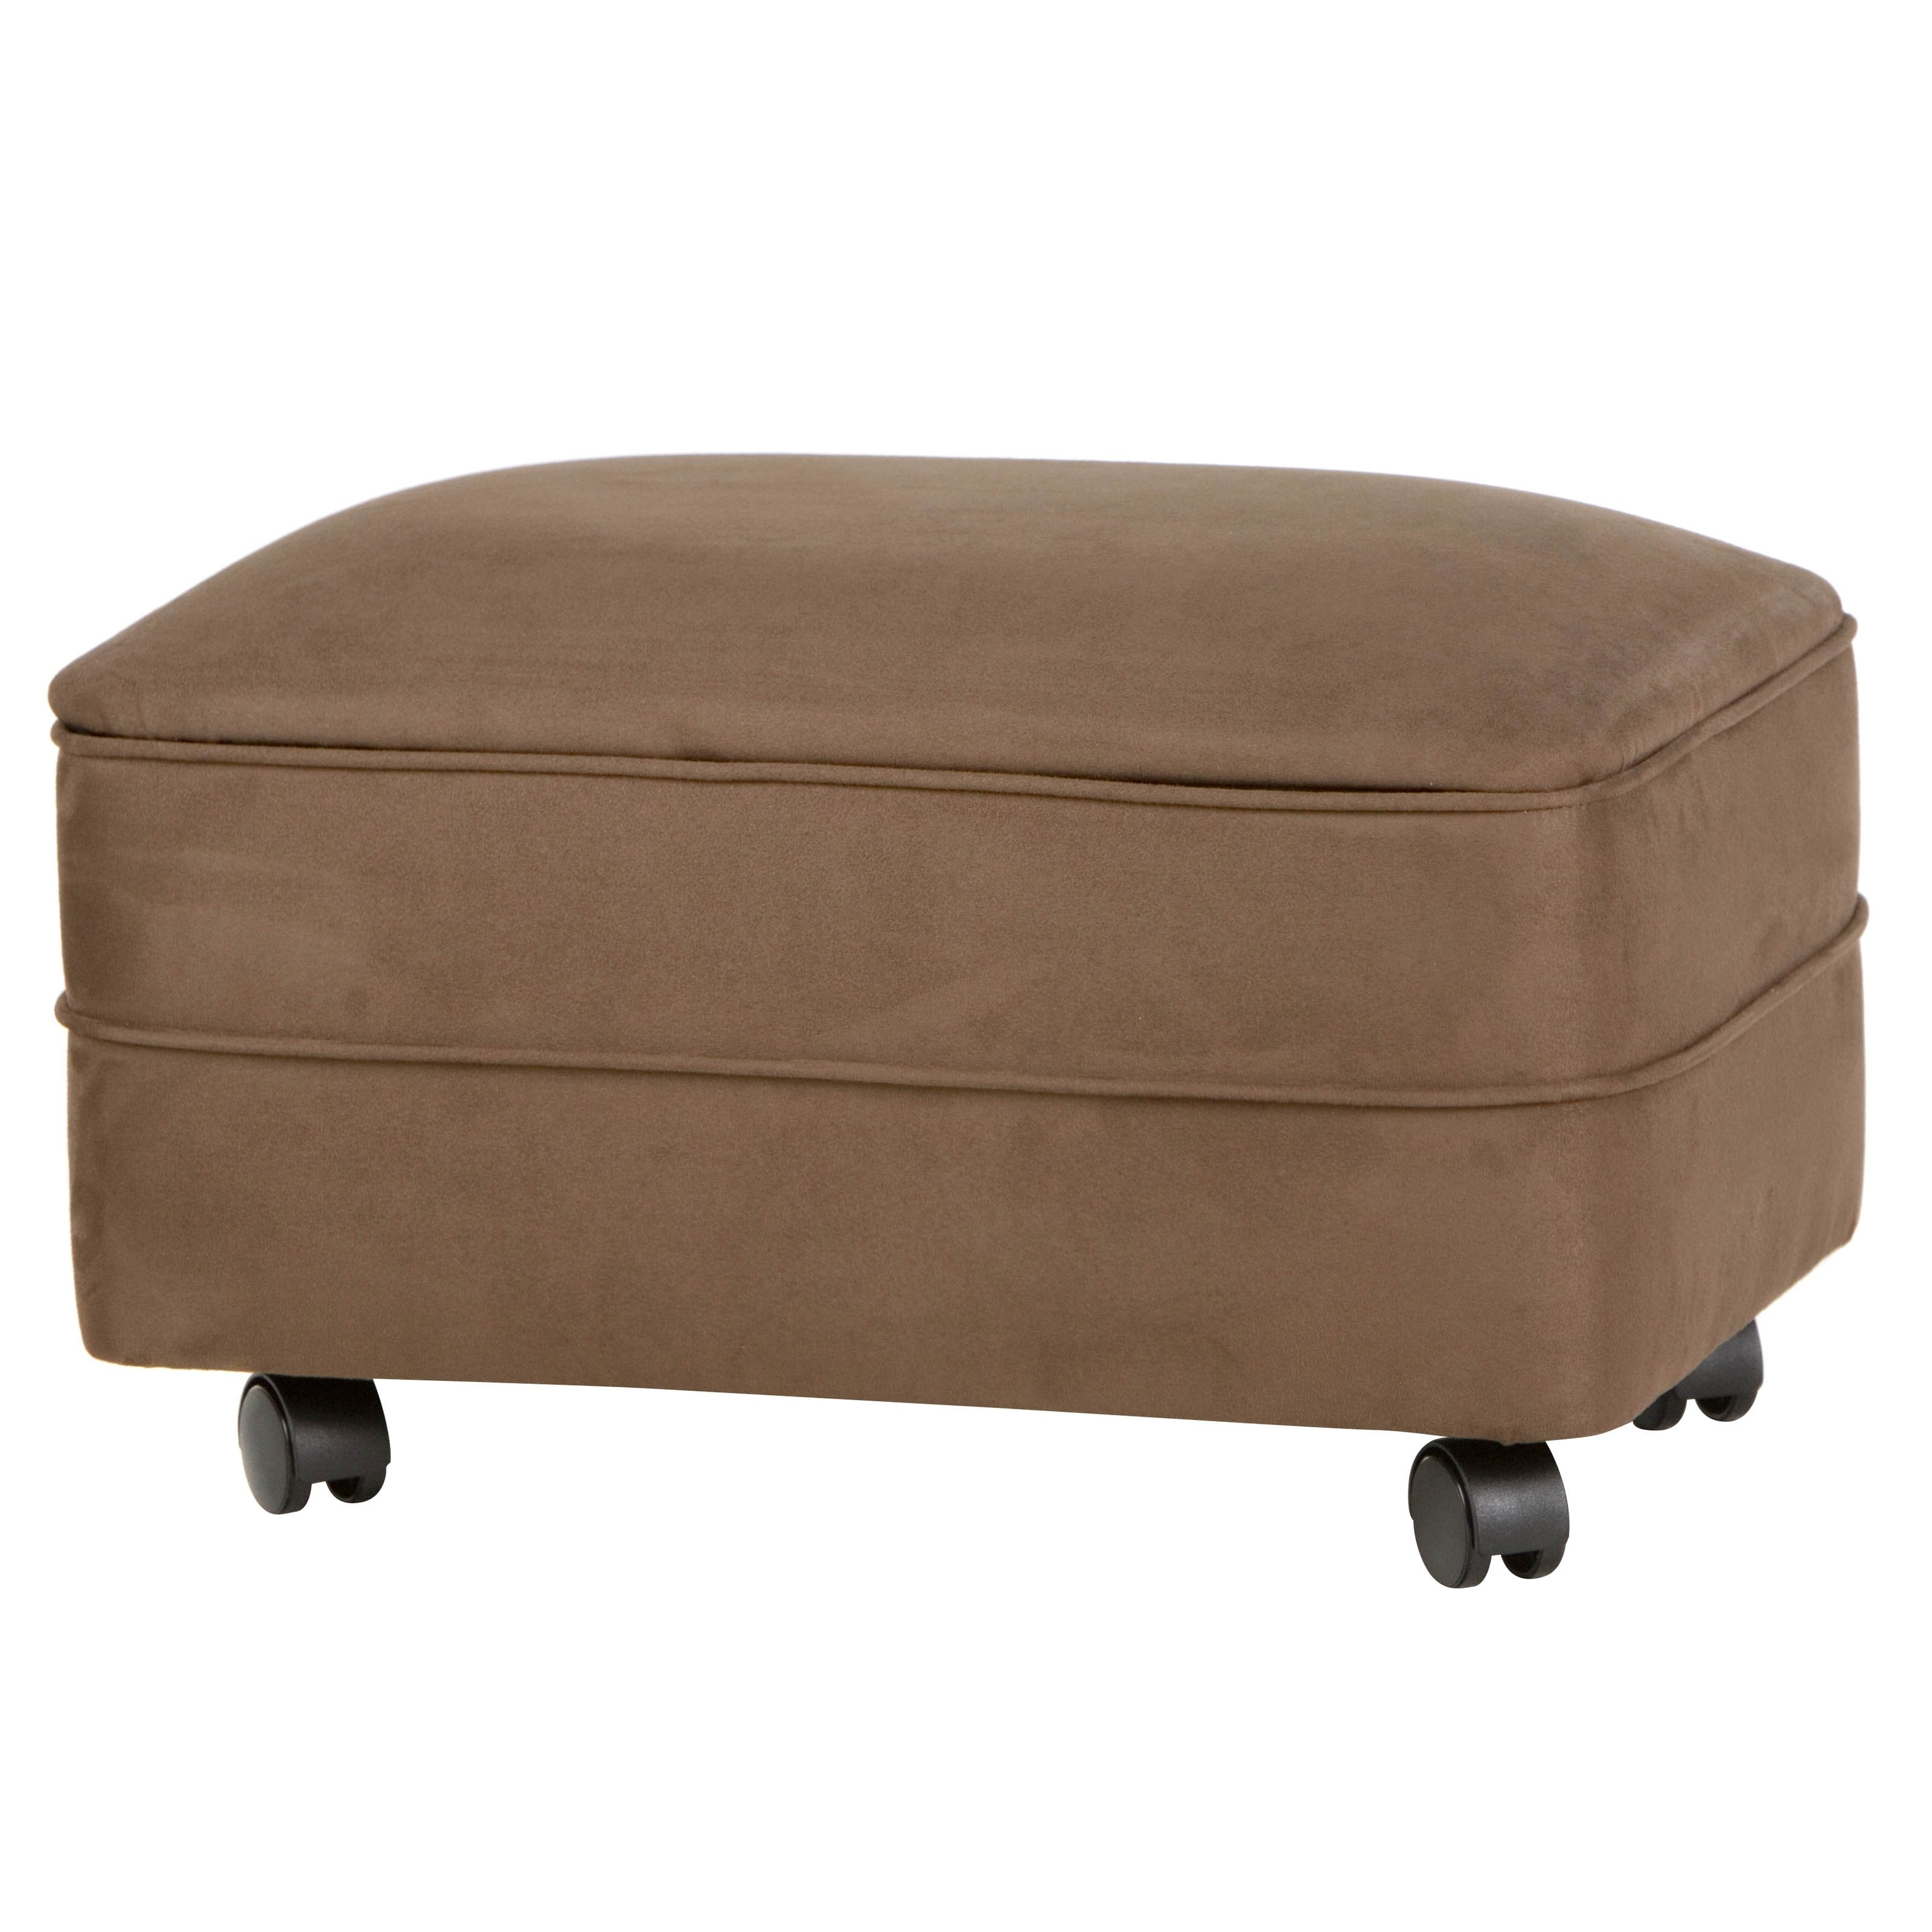 2018 Ottomans With Wheels In Microfiber Storage Ottoman, Footstools And Ottomans With Wheels (View 2 of 20)